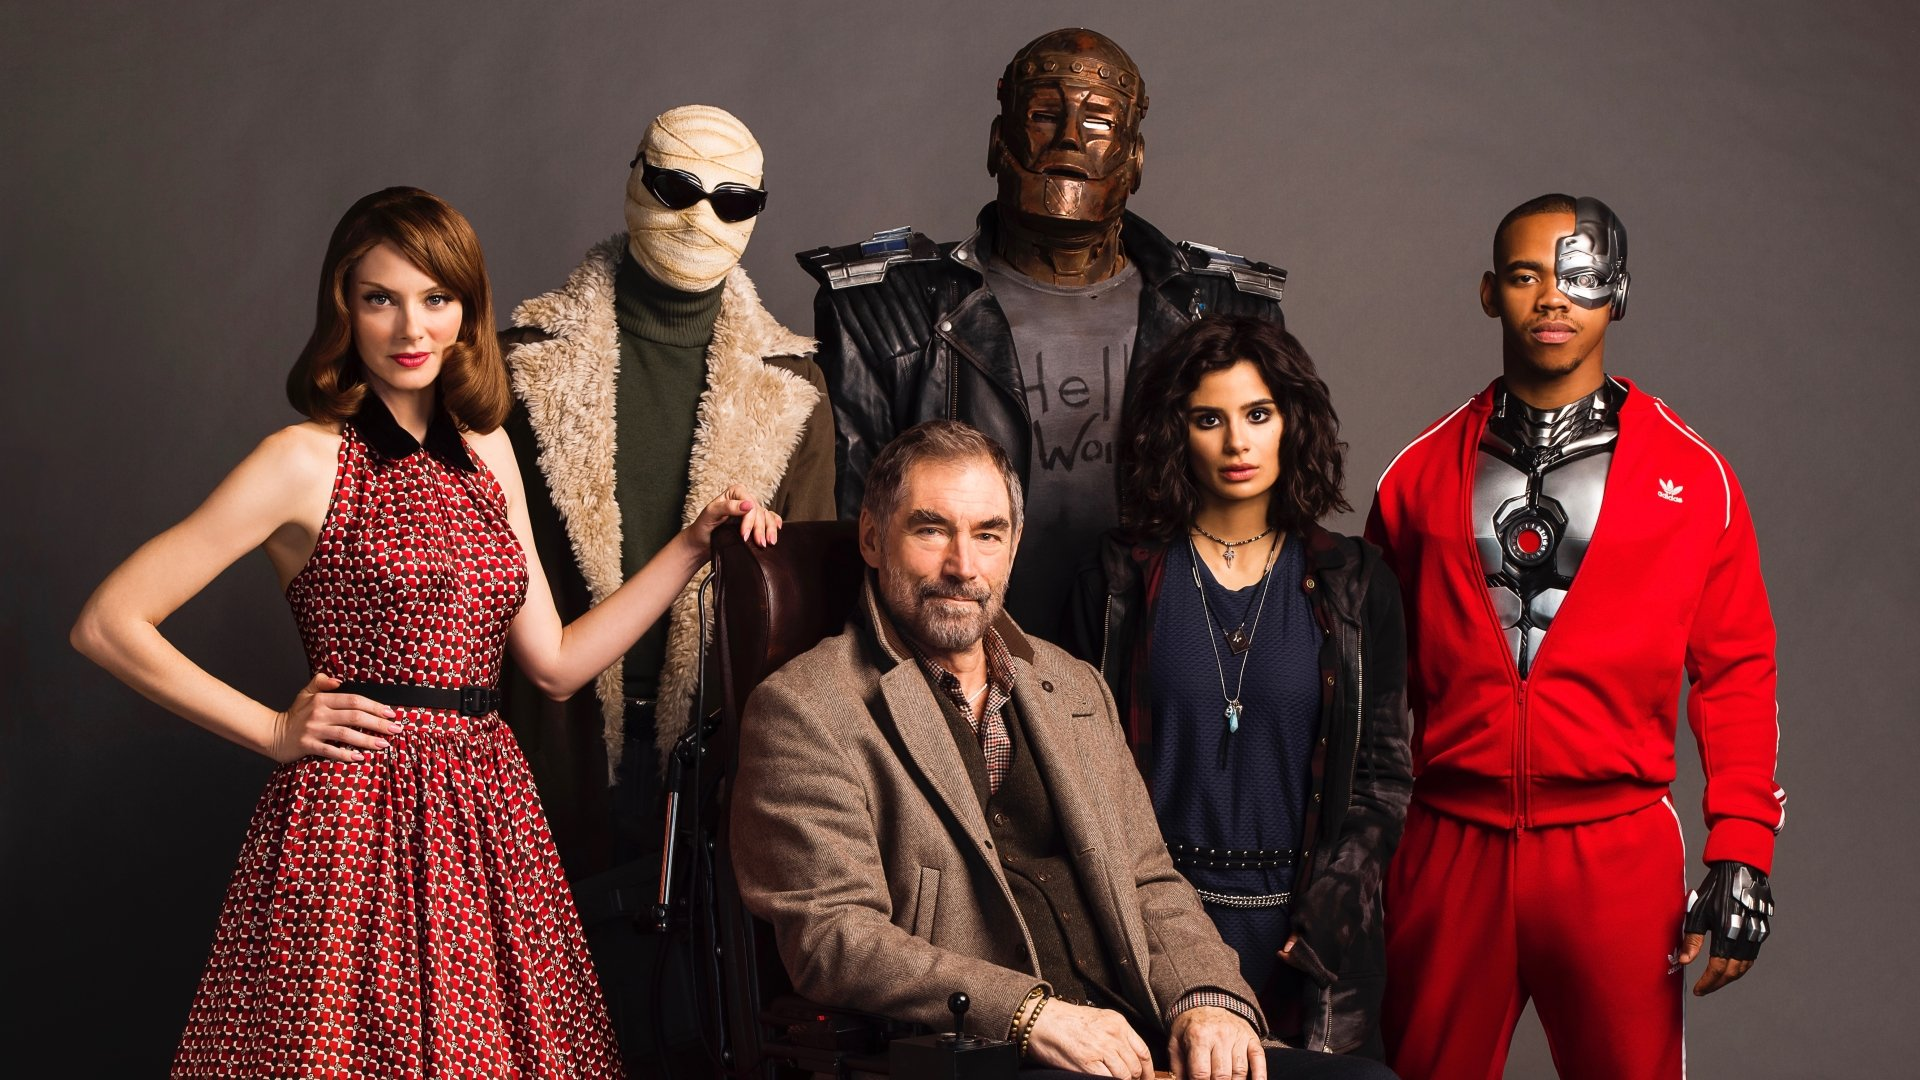 Doom Patrol Season 2 Trailer, Release Date, Cast, Plot Spoilers and DC Universe Connection